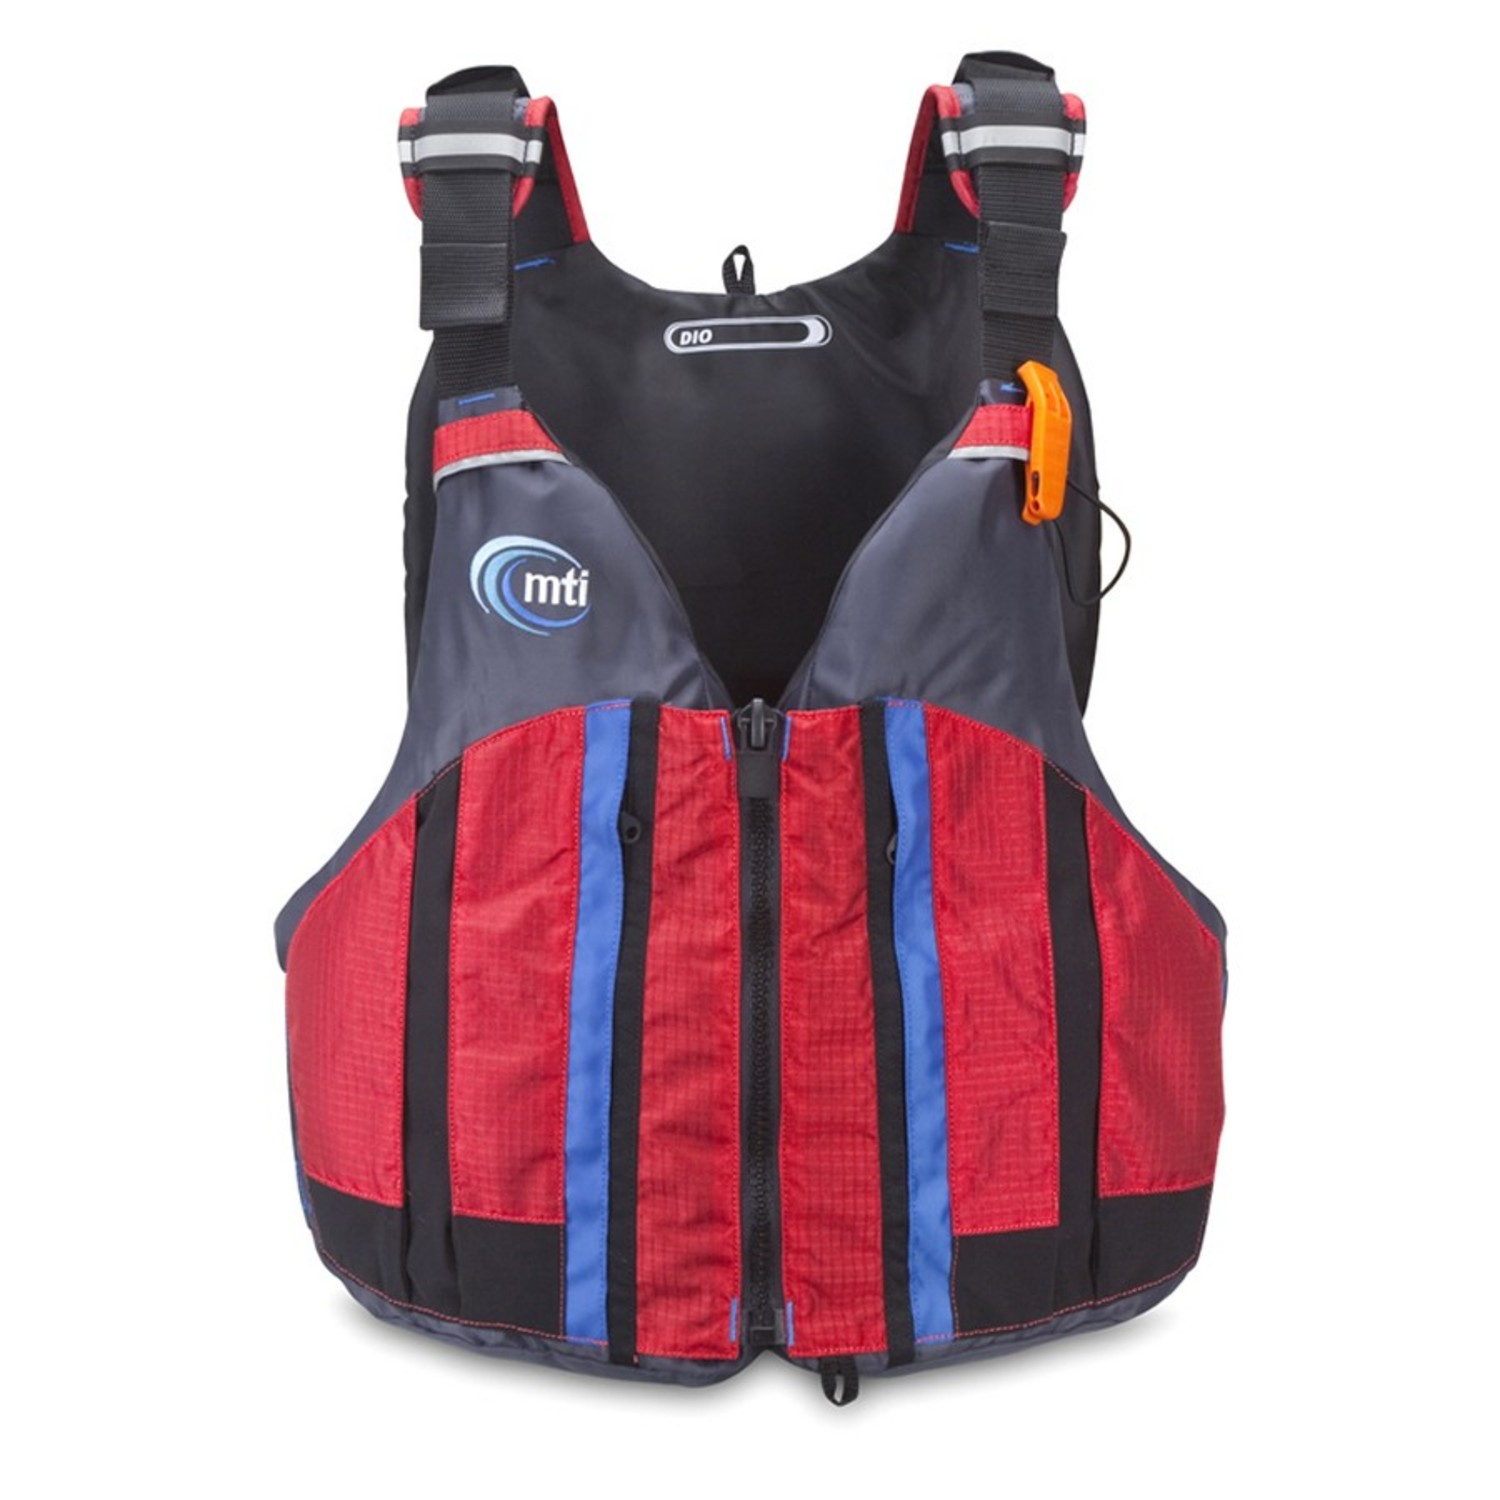 Mti Adventurewear Dio Highback Personal Flotation Device